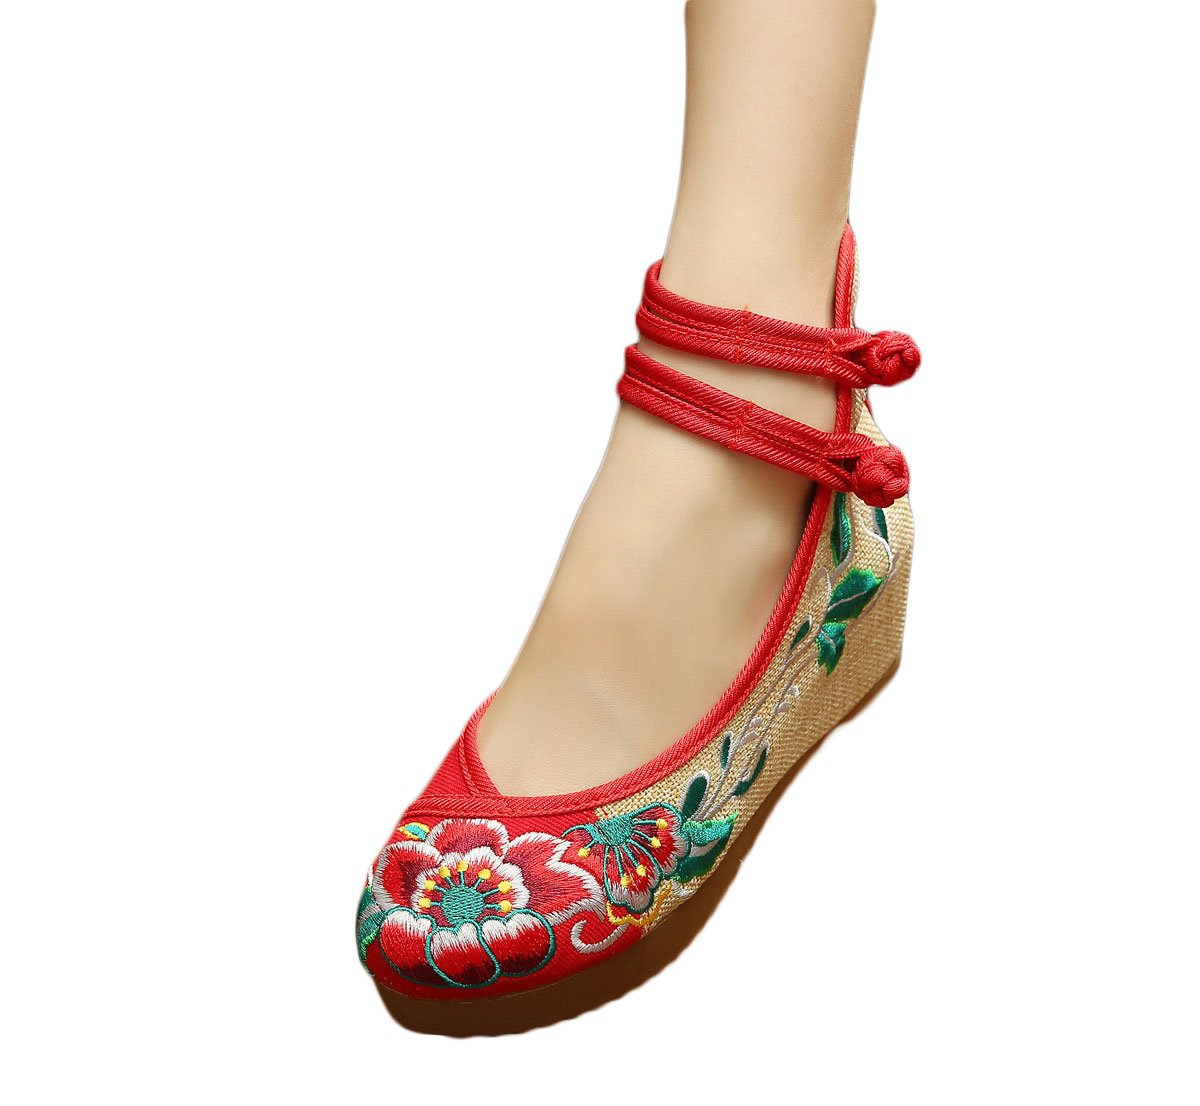 EXCELLANYARD Women's Embroidery Platform Wedges B01KPI5MN6 6 B(M) US|21-red